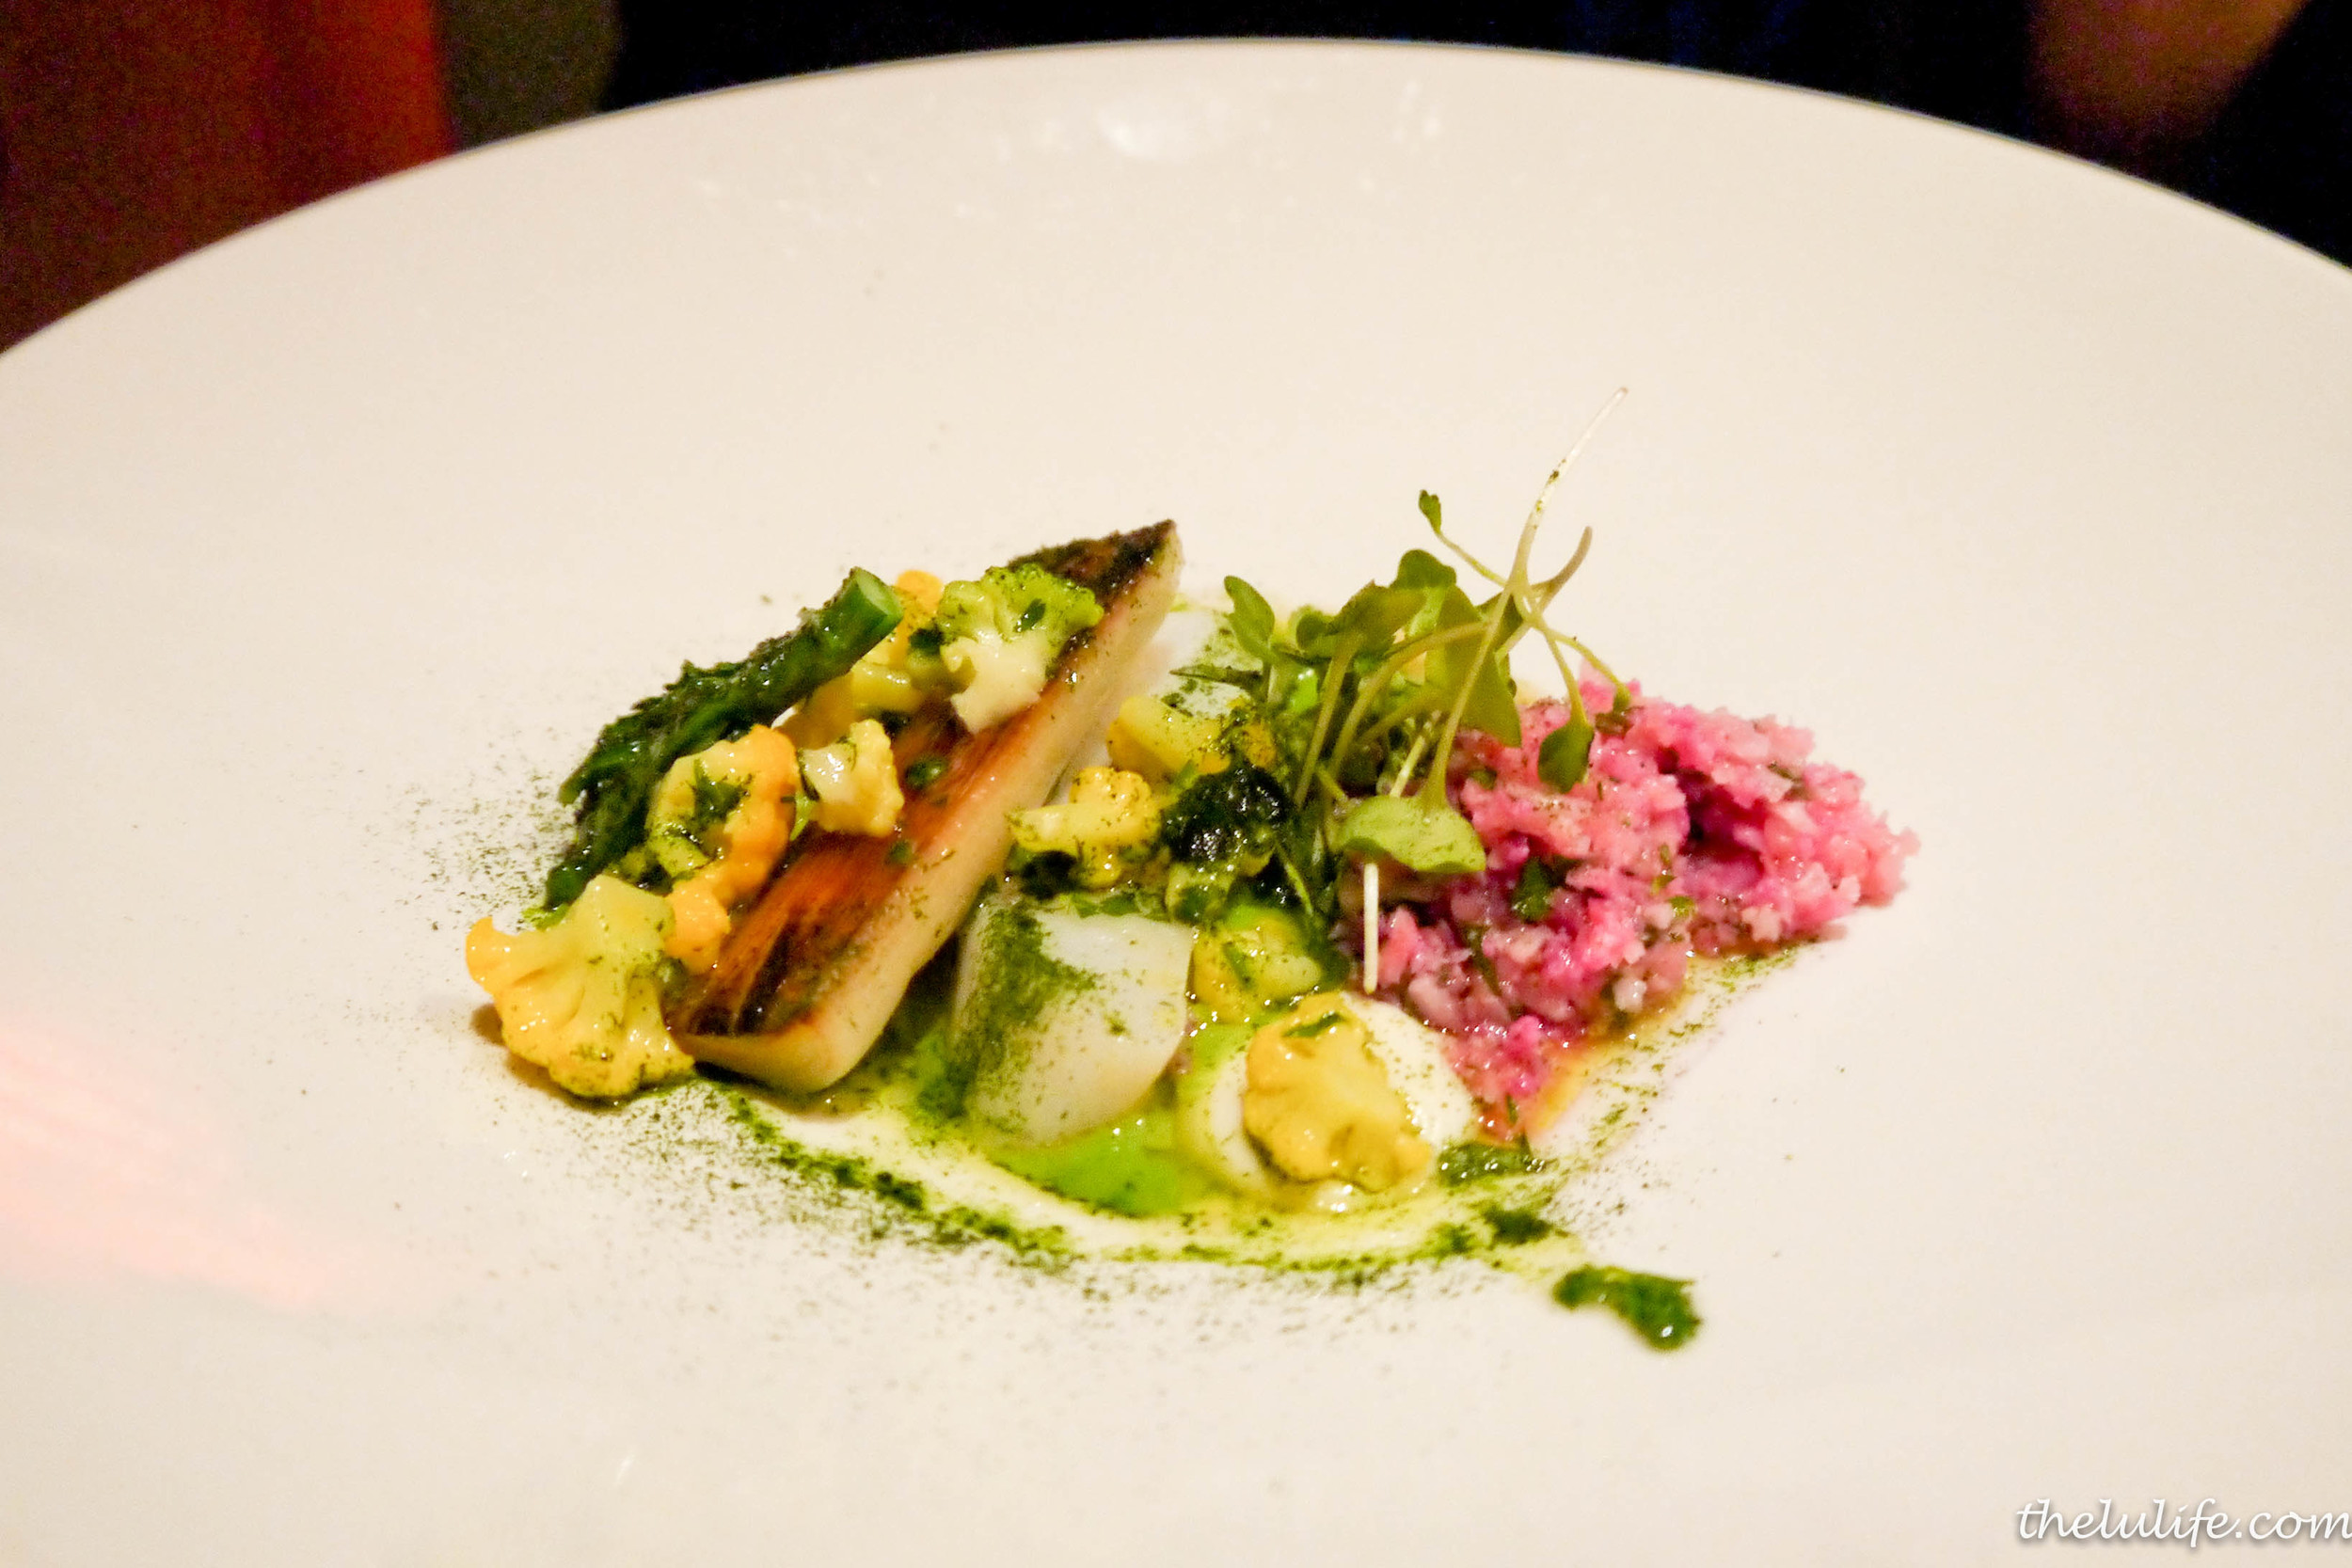 Poached pollock with grilled leak, broccoli, cauliflower and romanesco